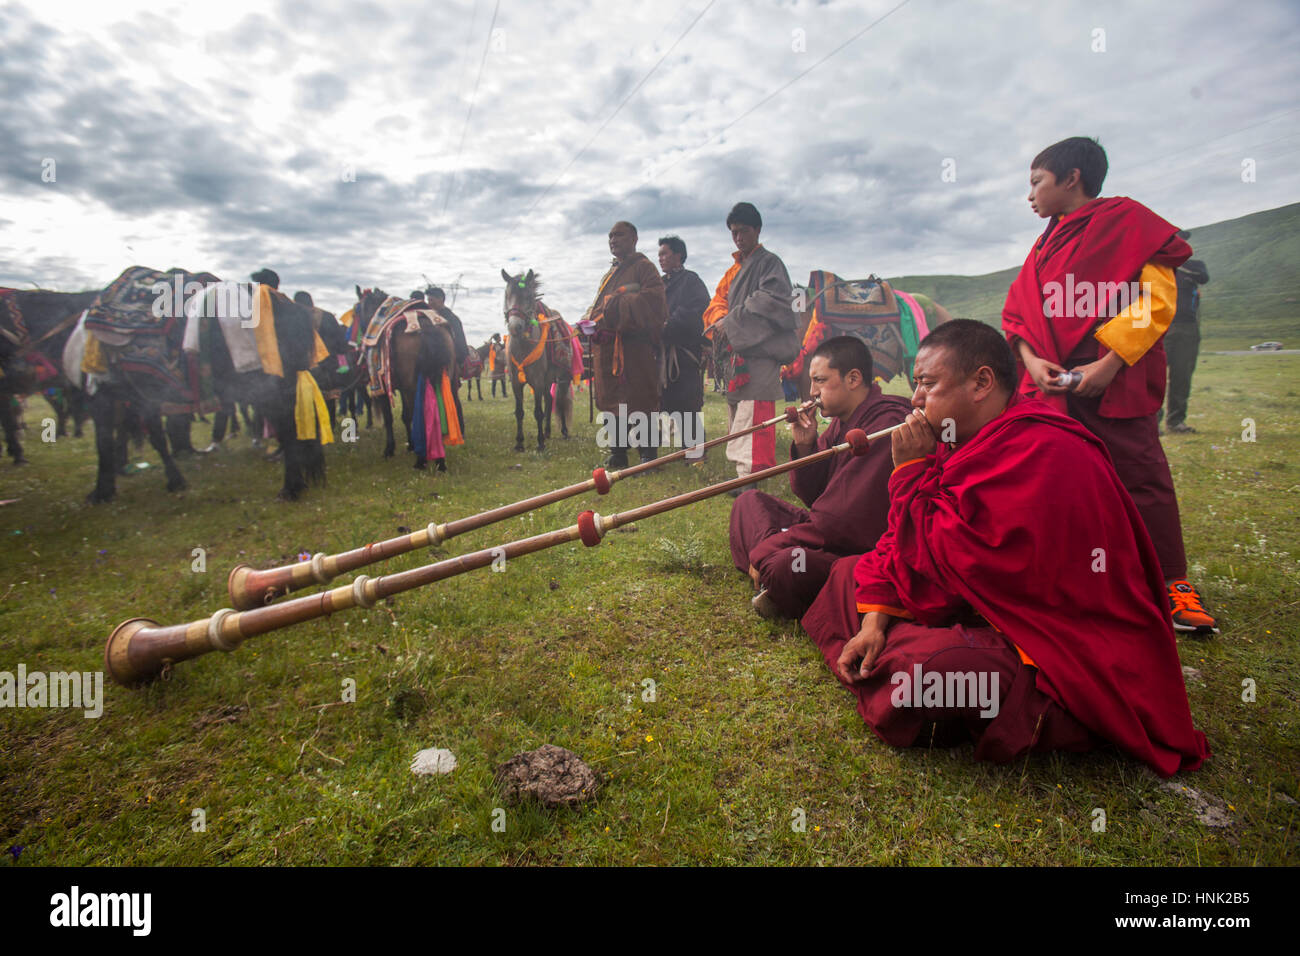 Tibetan Buddhist monks play traditional instruments to bless the horse riders before racing at the Manigango Horse - Stock Image